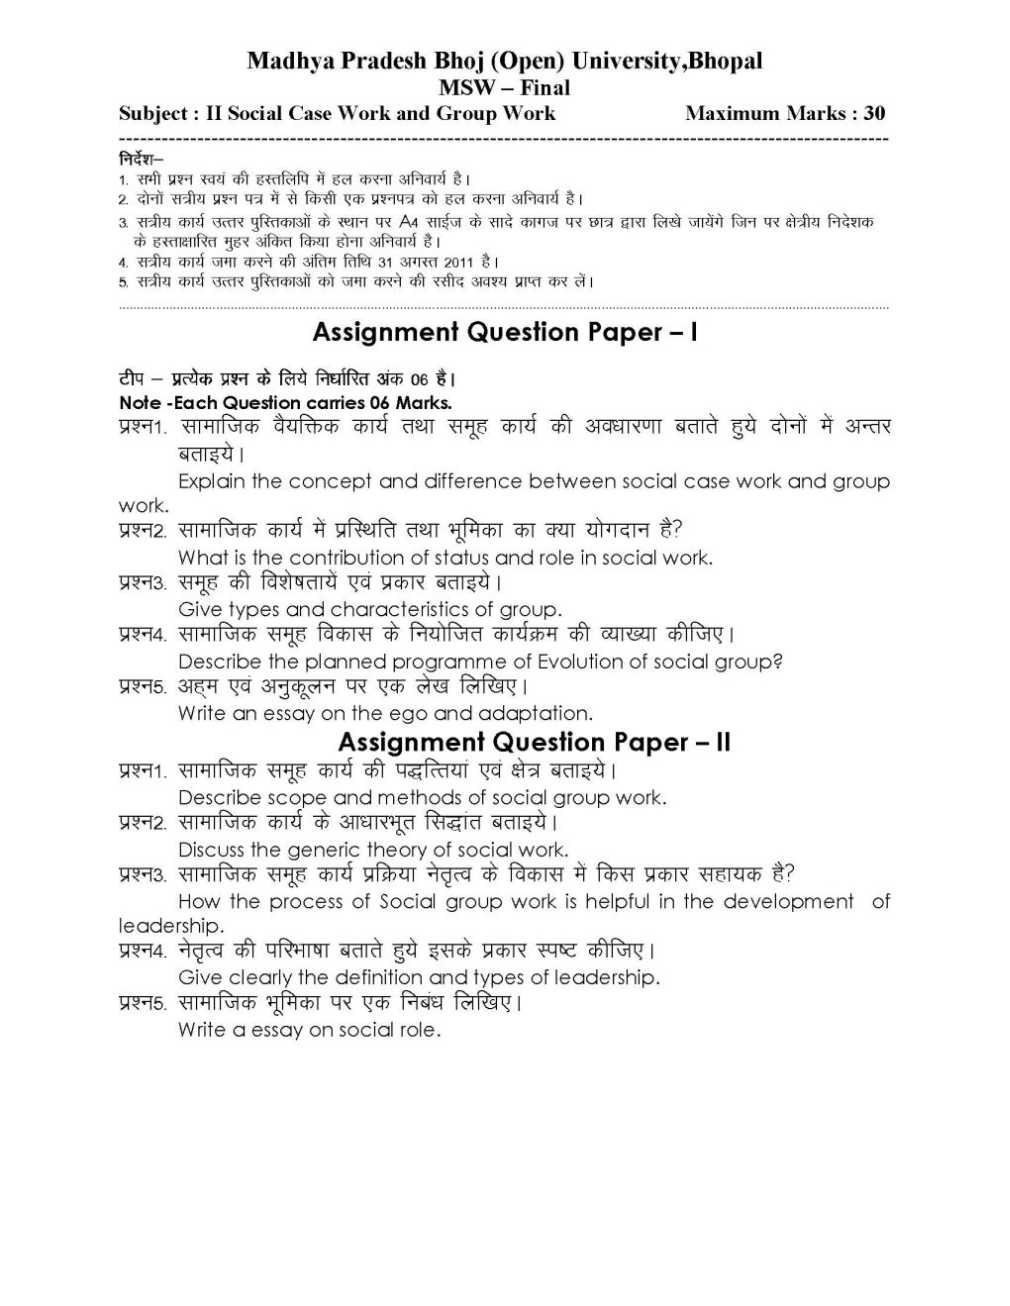 023 Bhoj University Bhopal Msw Essay Example Of Incredible Definition About Love Success Beauty Full